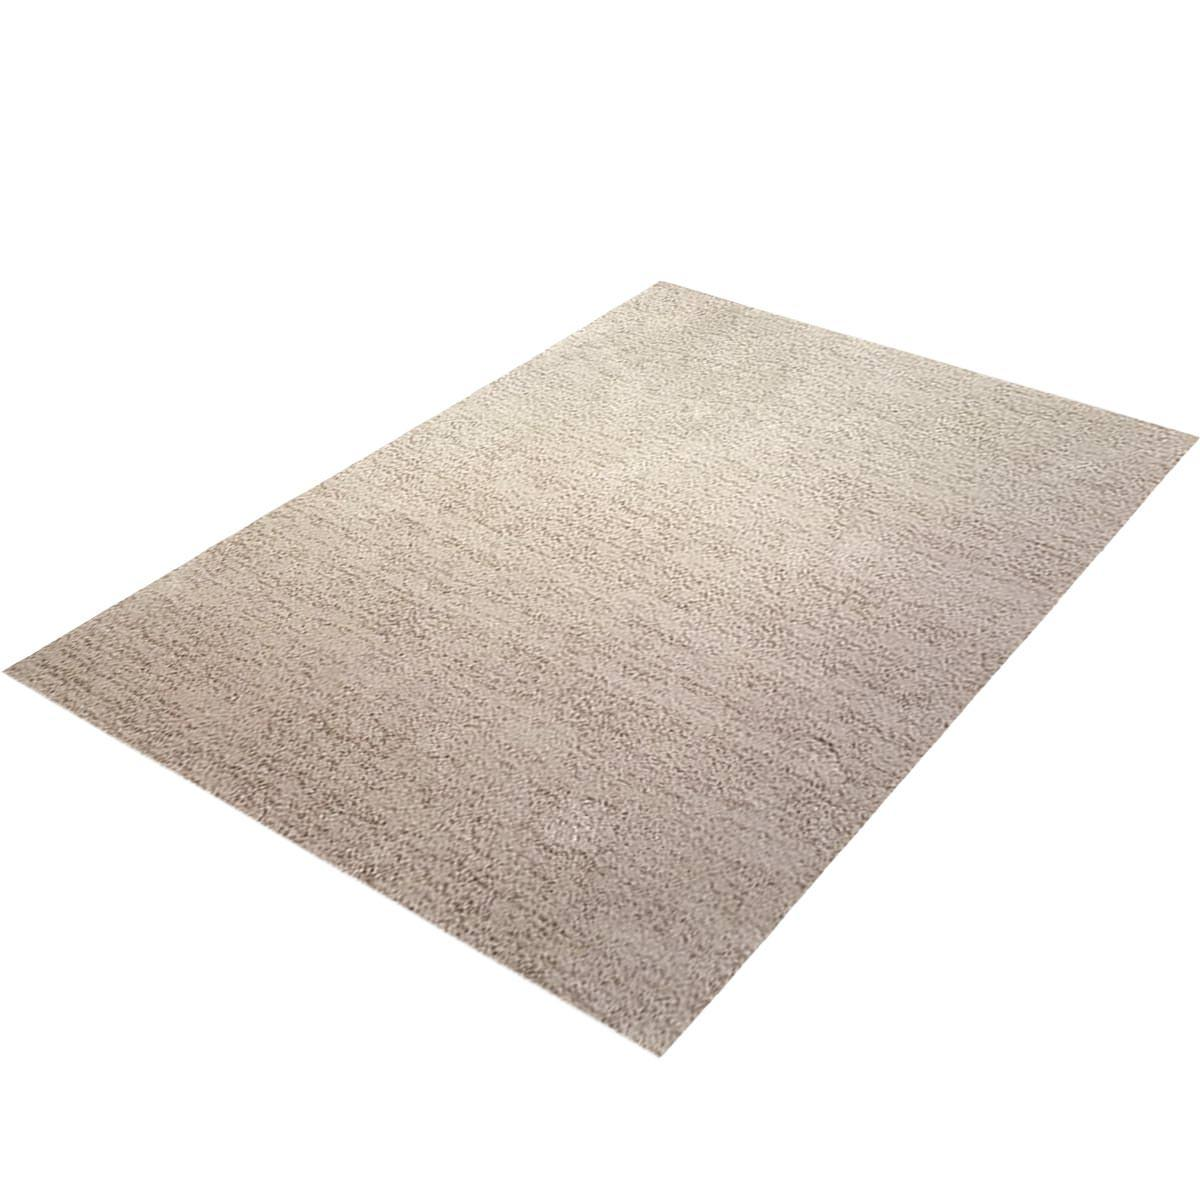 Monaco Rug 01 Light Beige 3